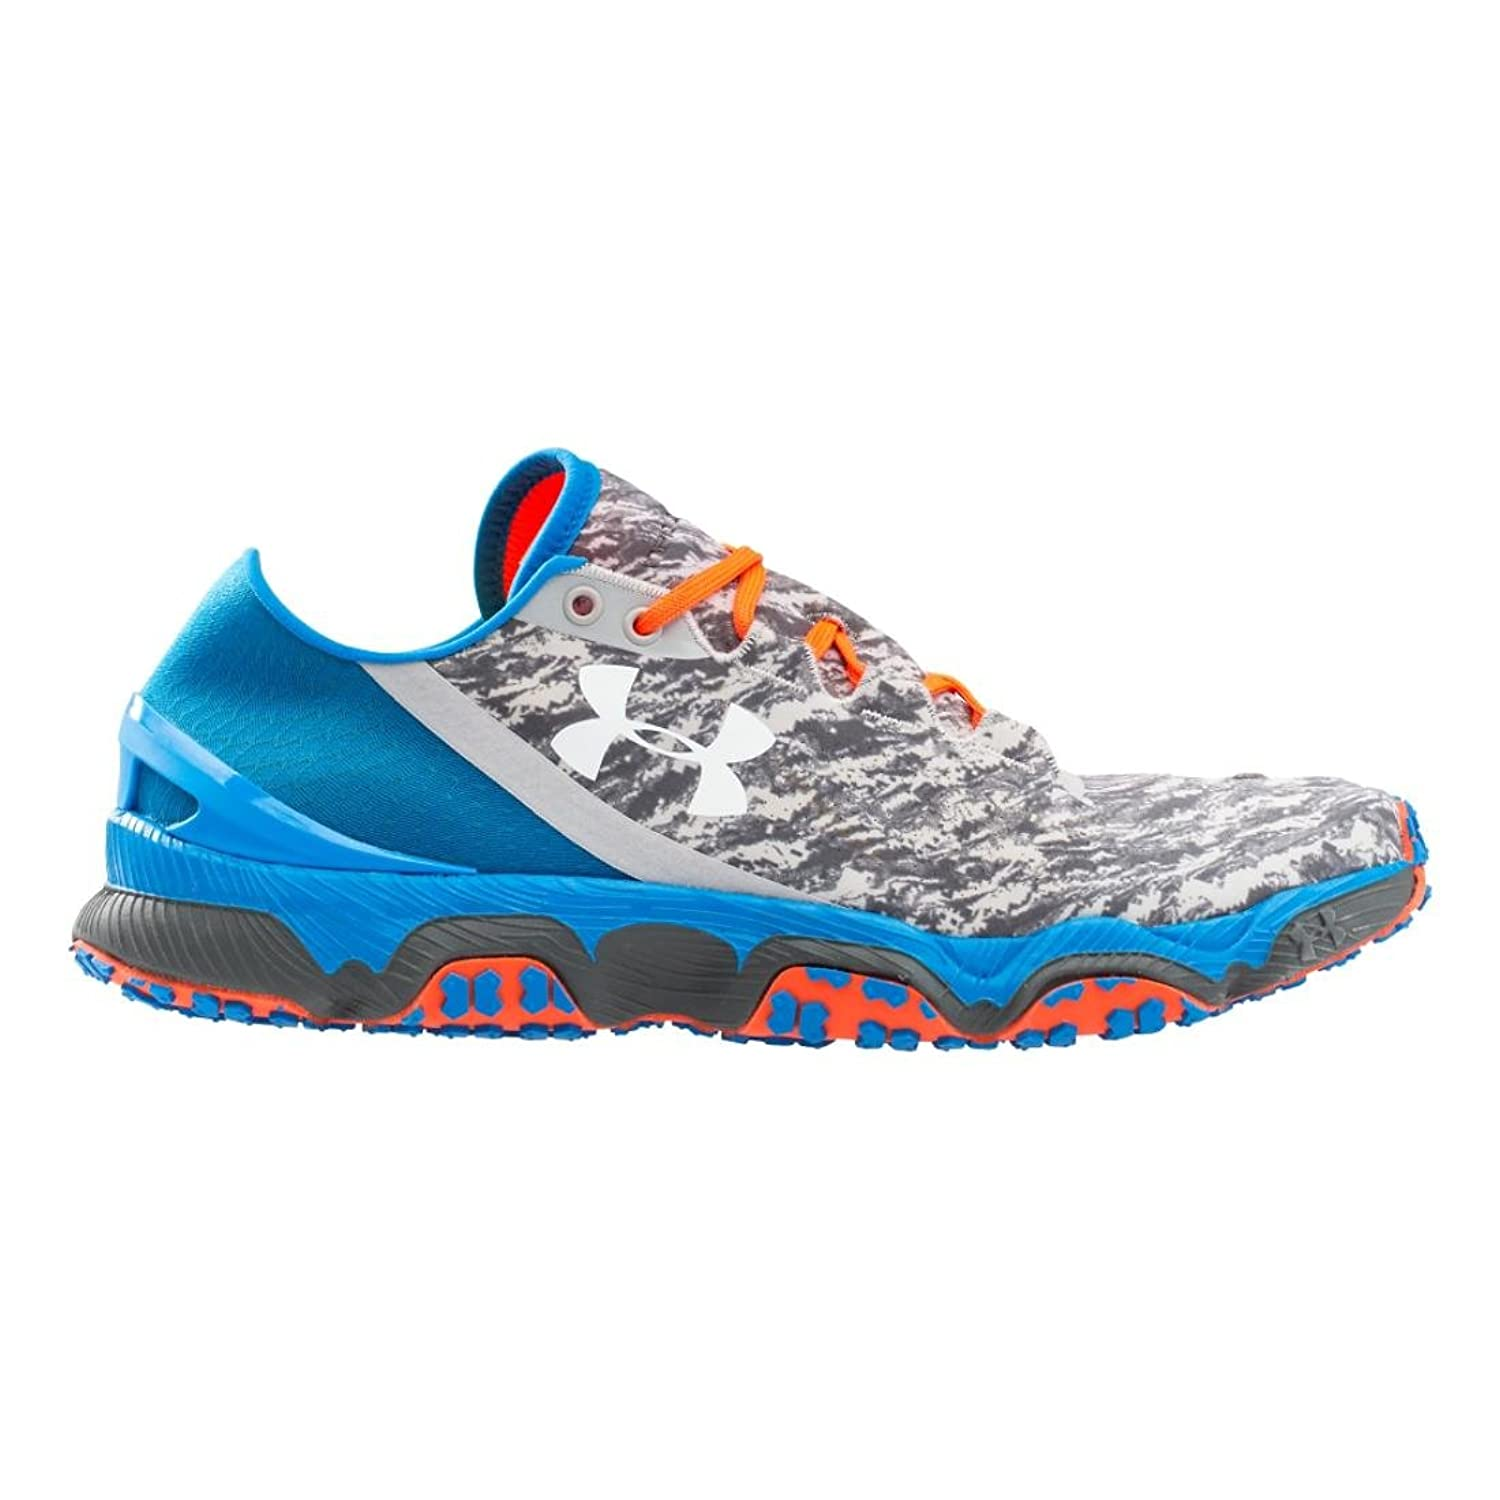 Under Armour Speedform XC Trail Running Shoes - AW15 - 15 - Blue